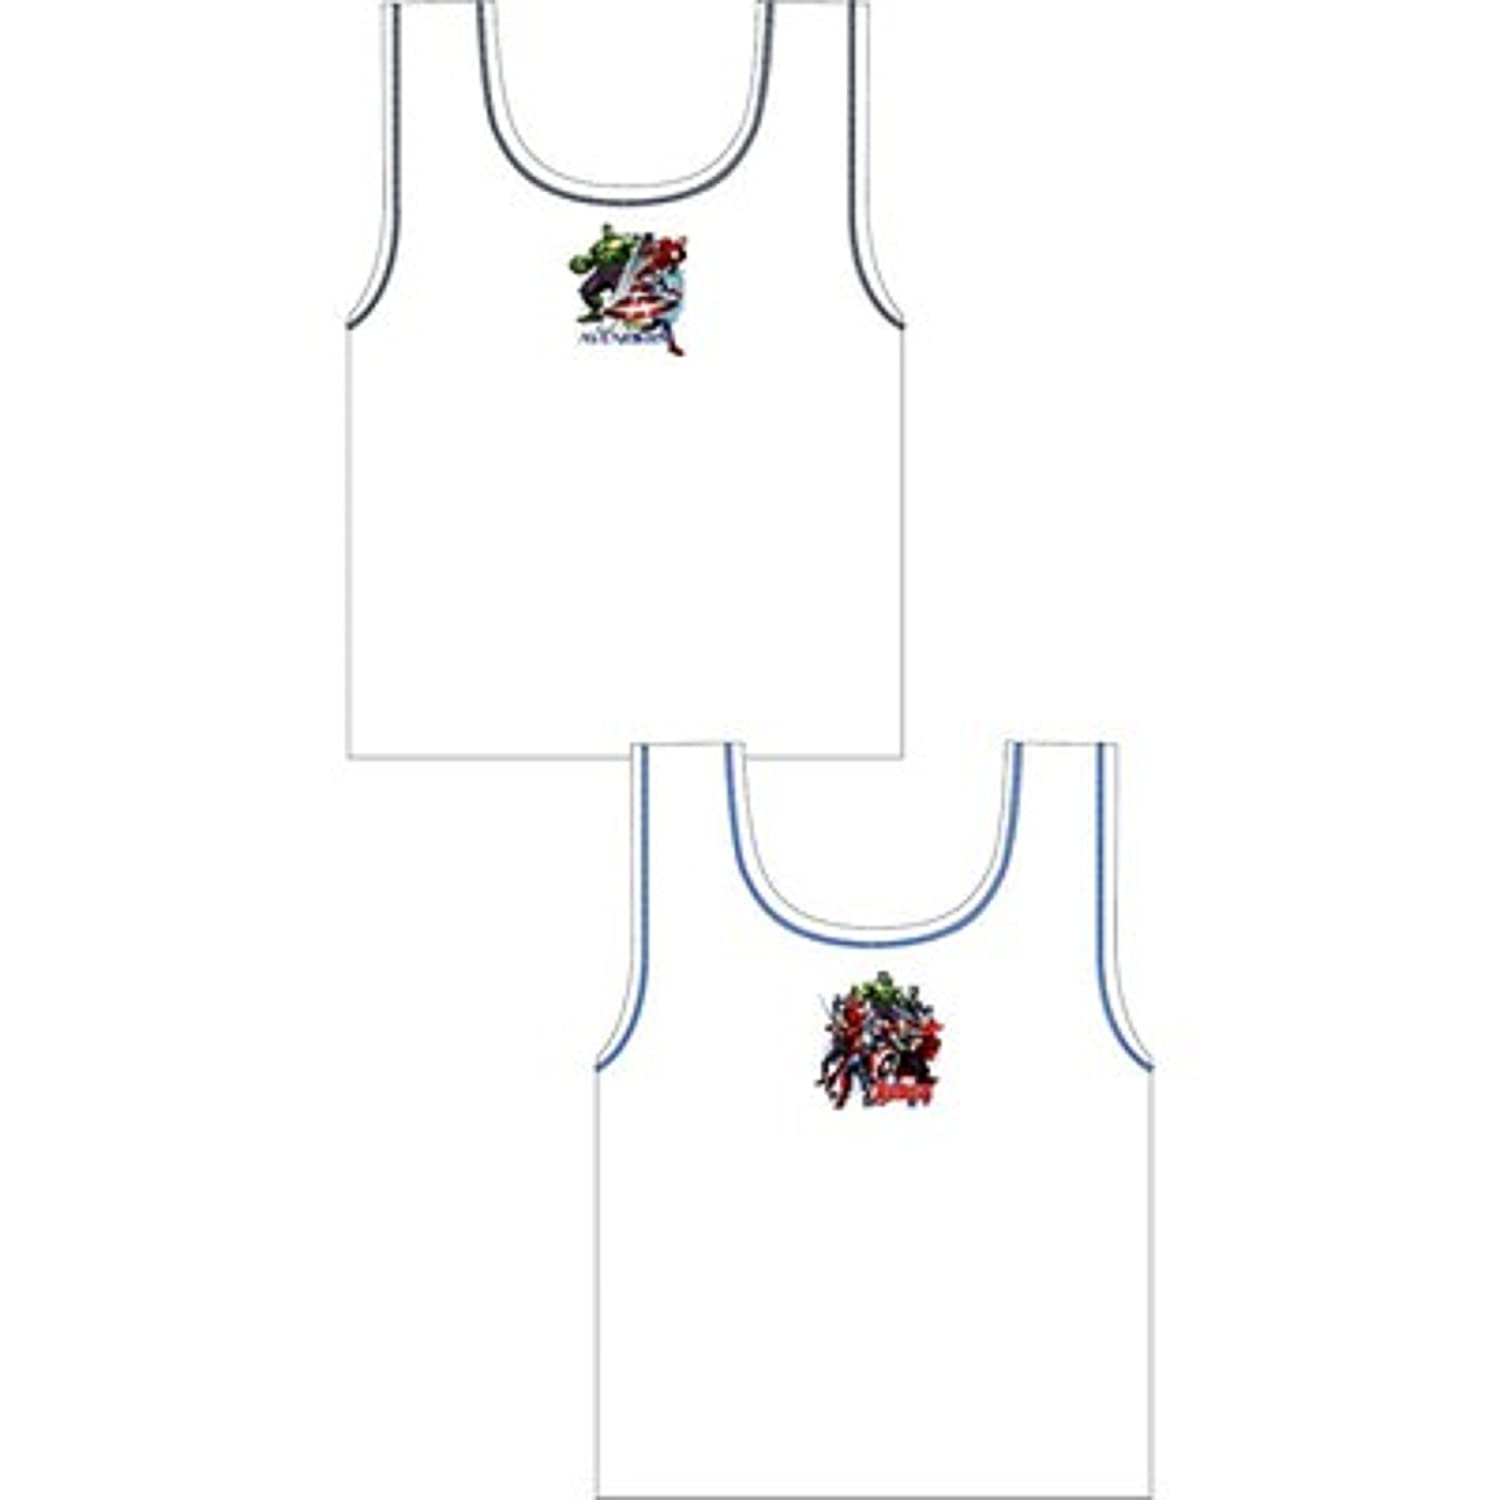 NEW BOYS OFFICIAL LICENCE MARVEL AVENGERS 2 IN A PACK VEST UNDERWEAR SIZE 3-4, 5-6 & 7-8 YEARS